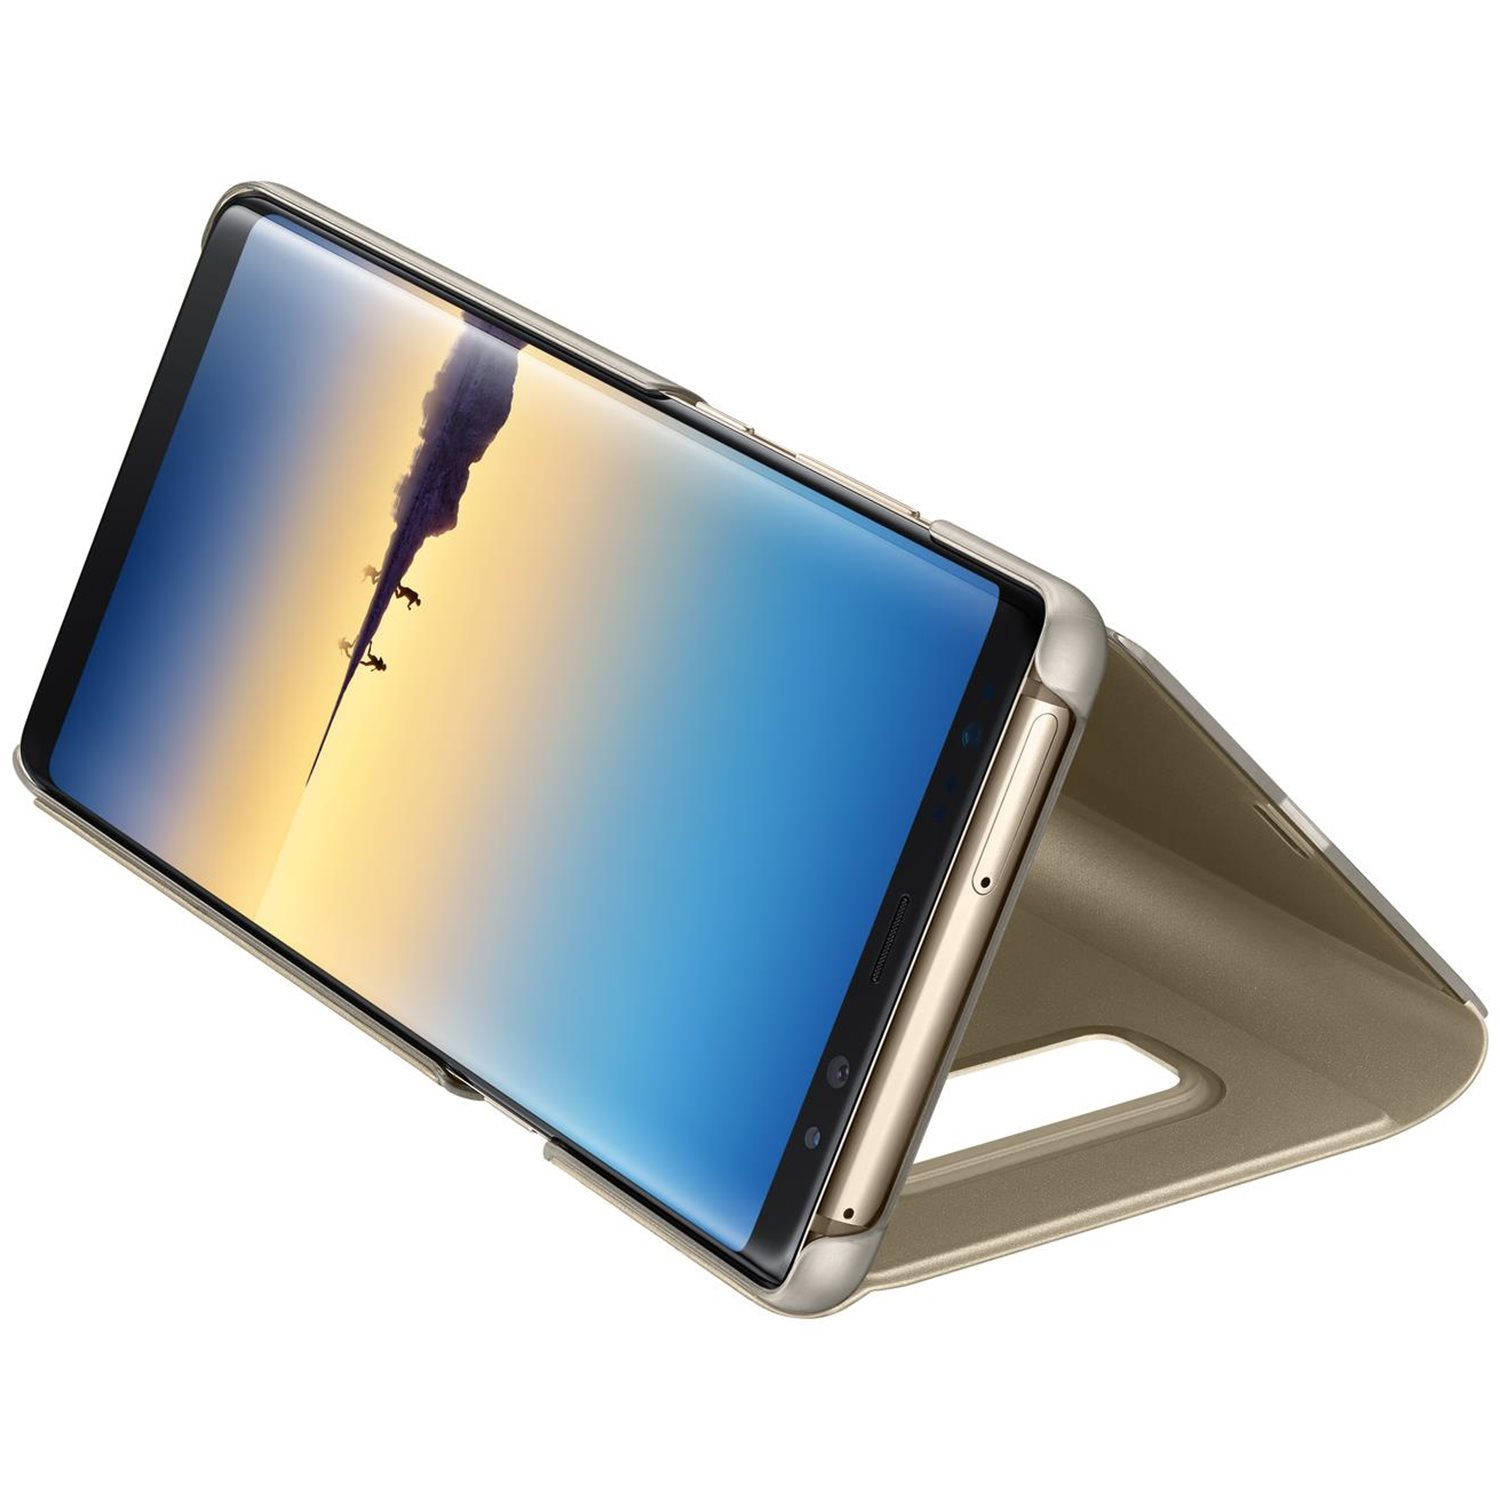 Official Samsung Galaxy Note 8 Clear View Standing Cover Case - Gold